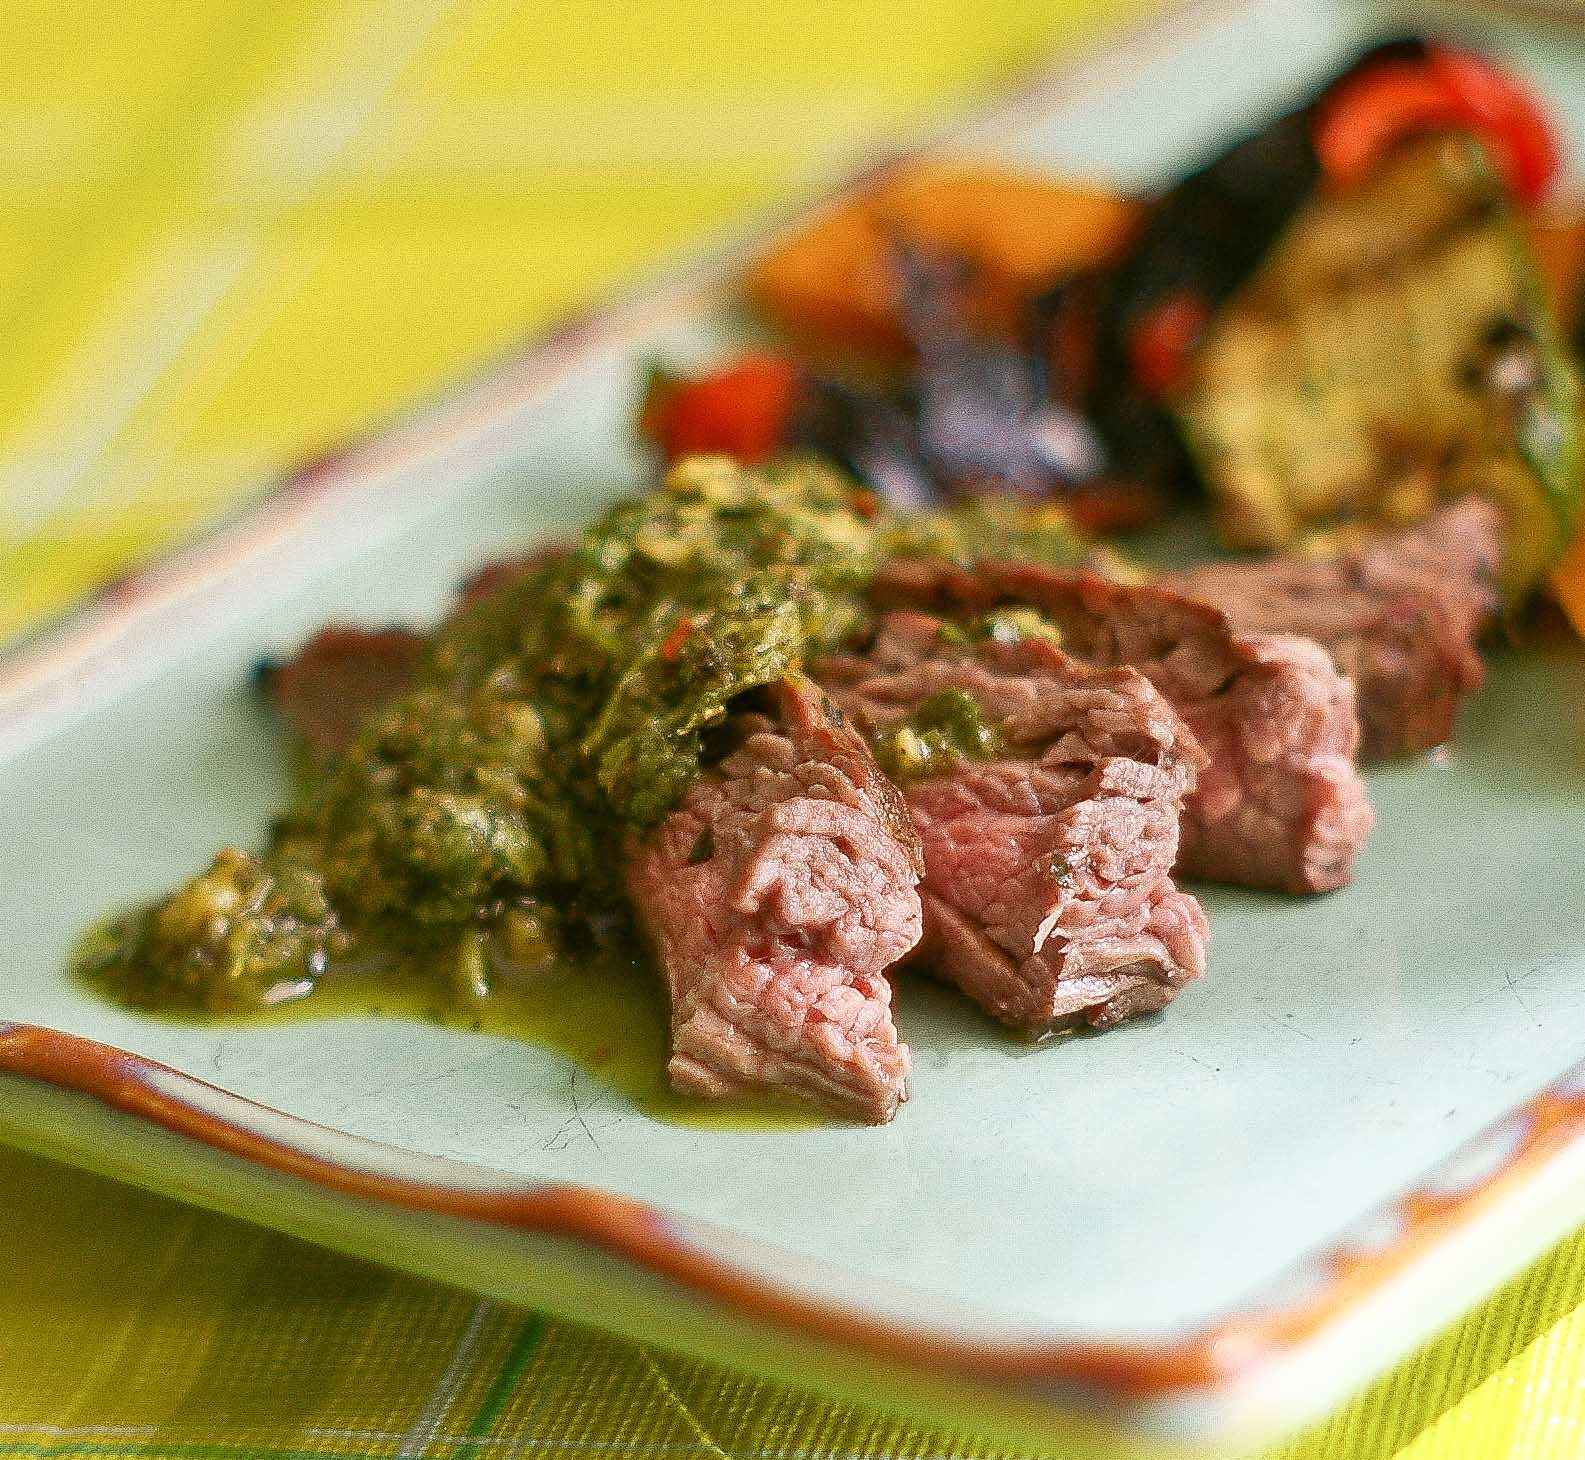 The Yum Yum Factor: Argentinian Flank Steak with Chimichurri